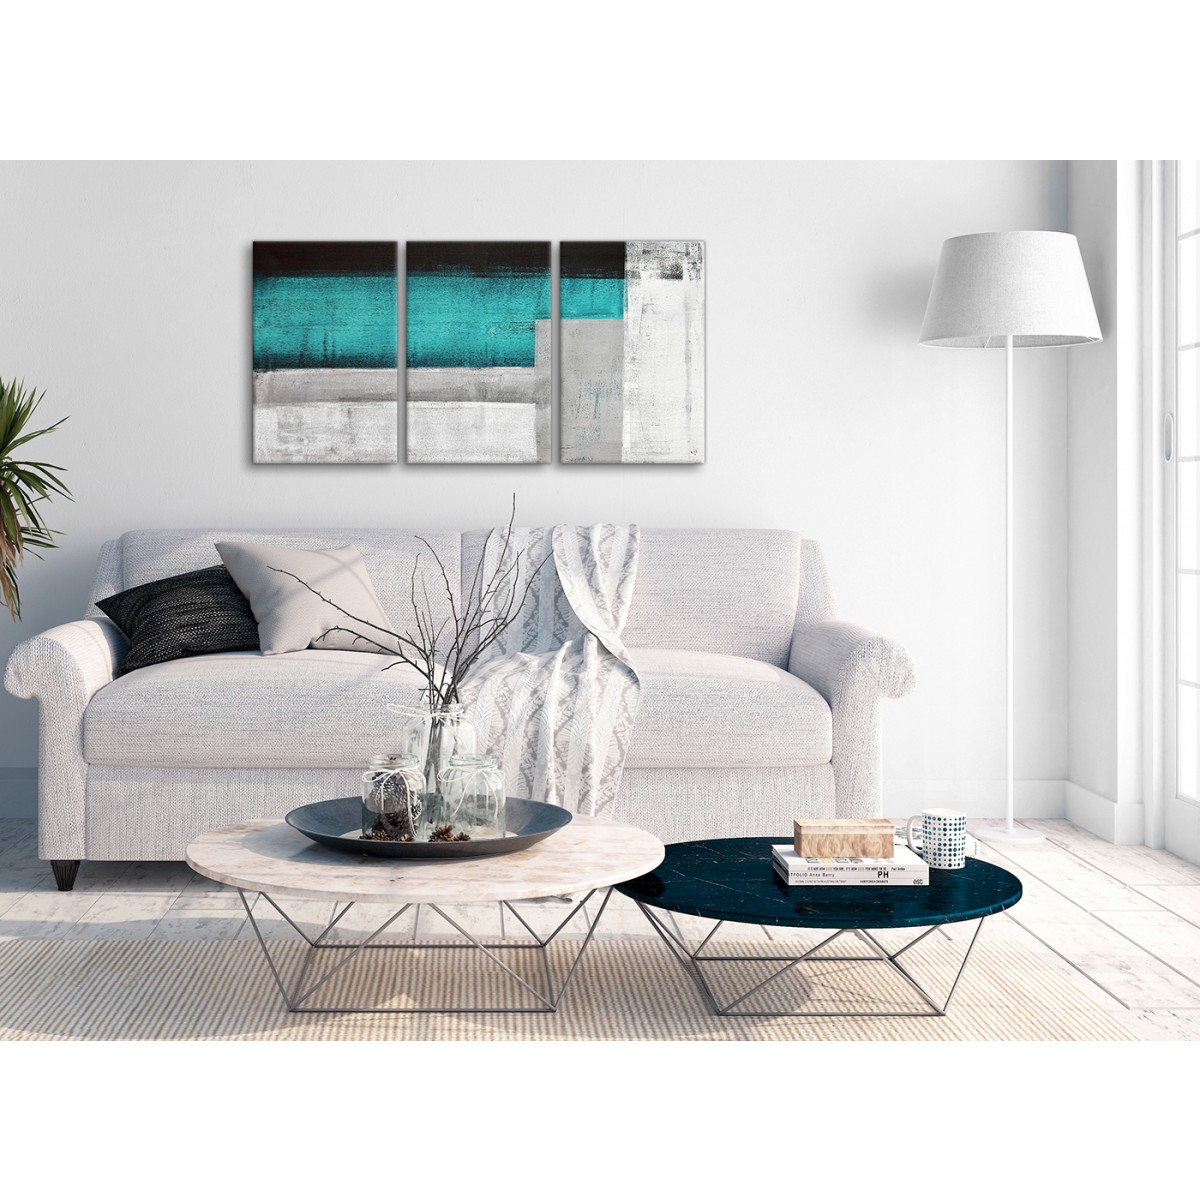 3 Panel Teal Turquoise Grey Painting Office Canvas Wall ...